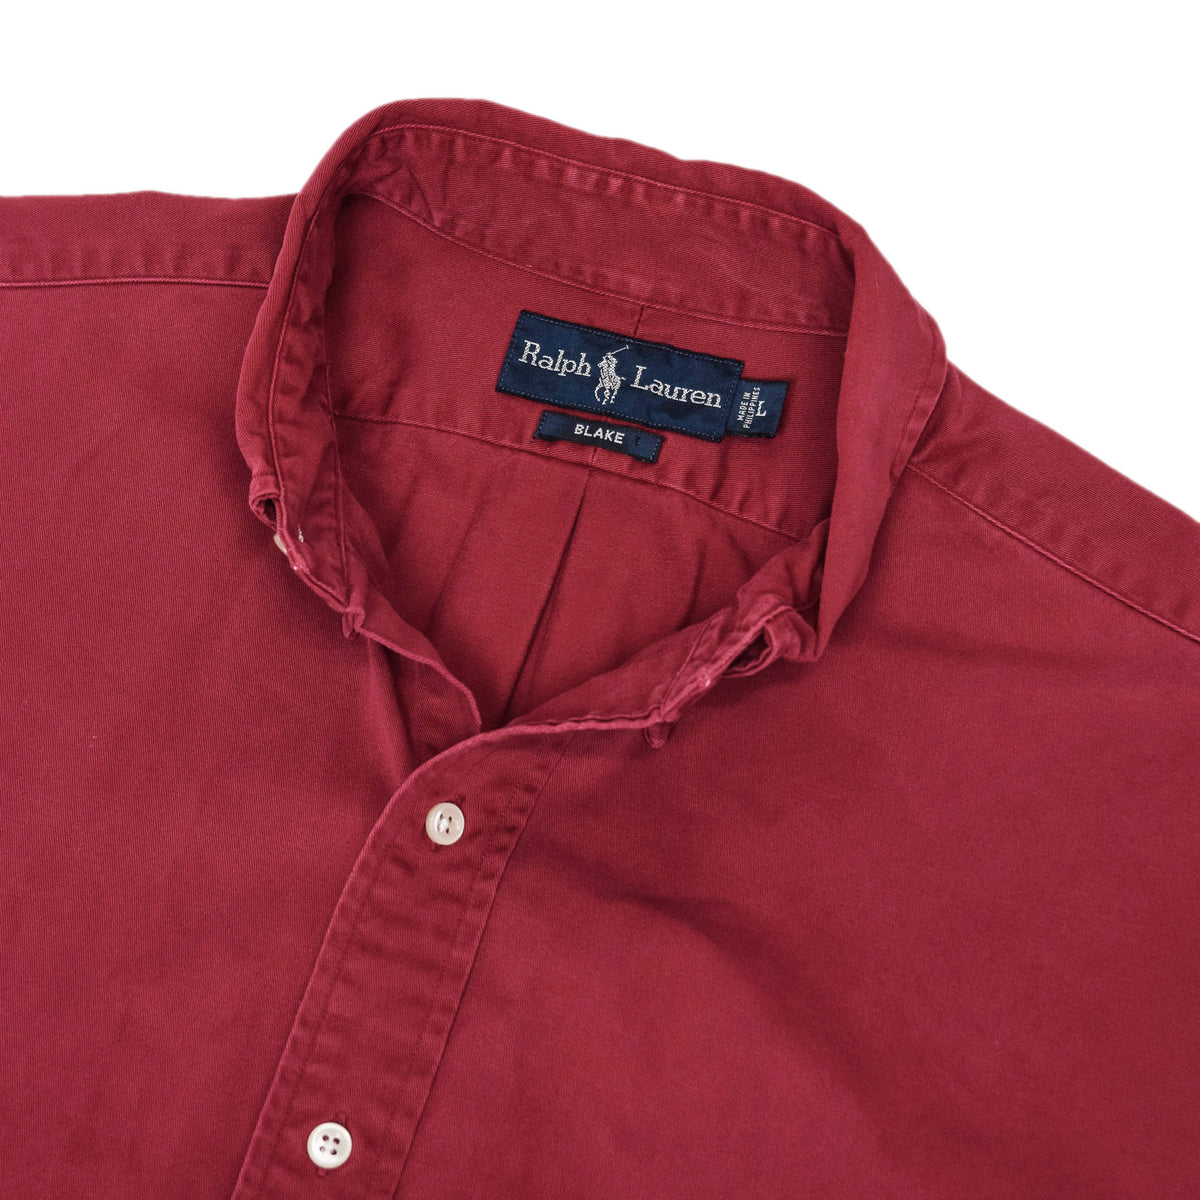 Vintage 80s Ralph Lauren Polo Long Sleeve Cotton Shirt Red L / XL collar